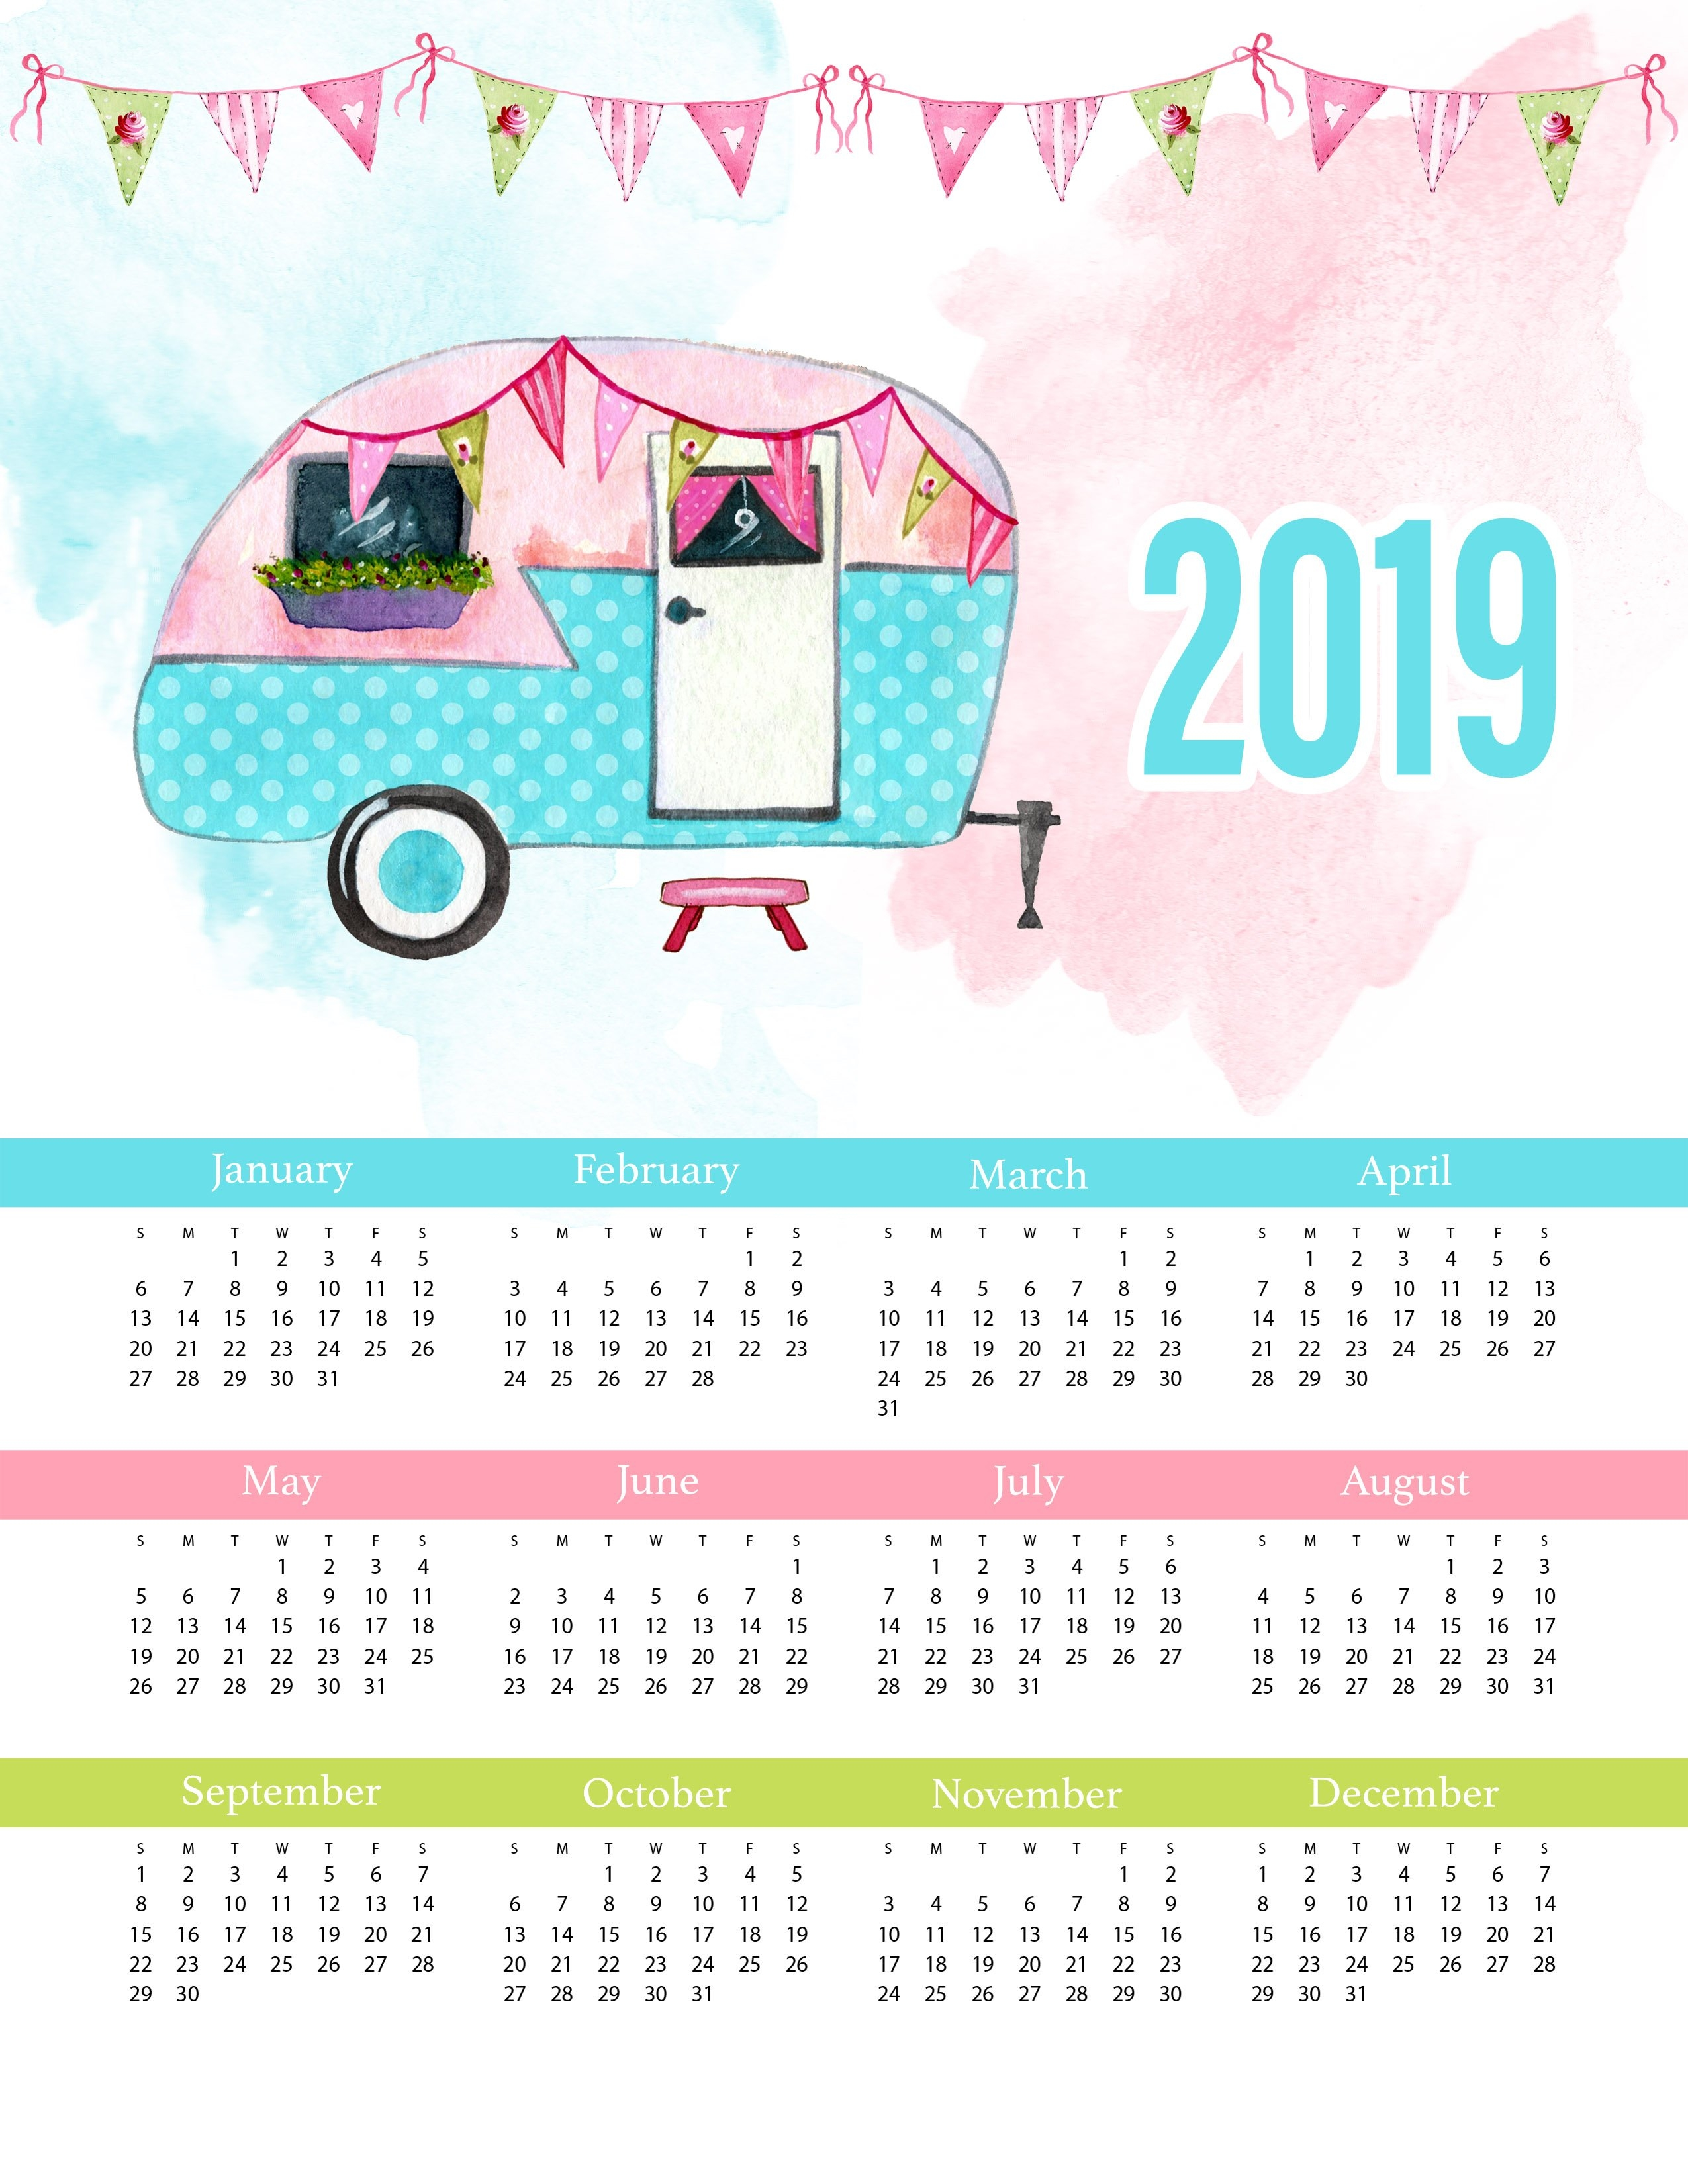 Free Printable 2019 Glamping One Page Calendar - The Cottage Market Calendar 2019 1 Page